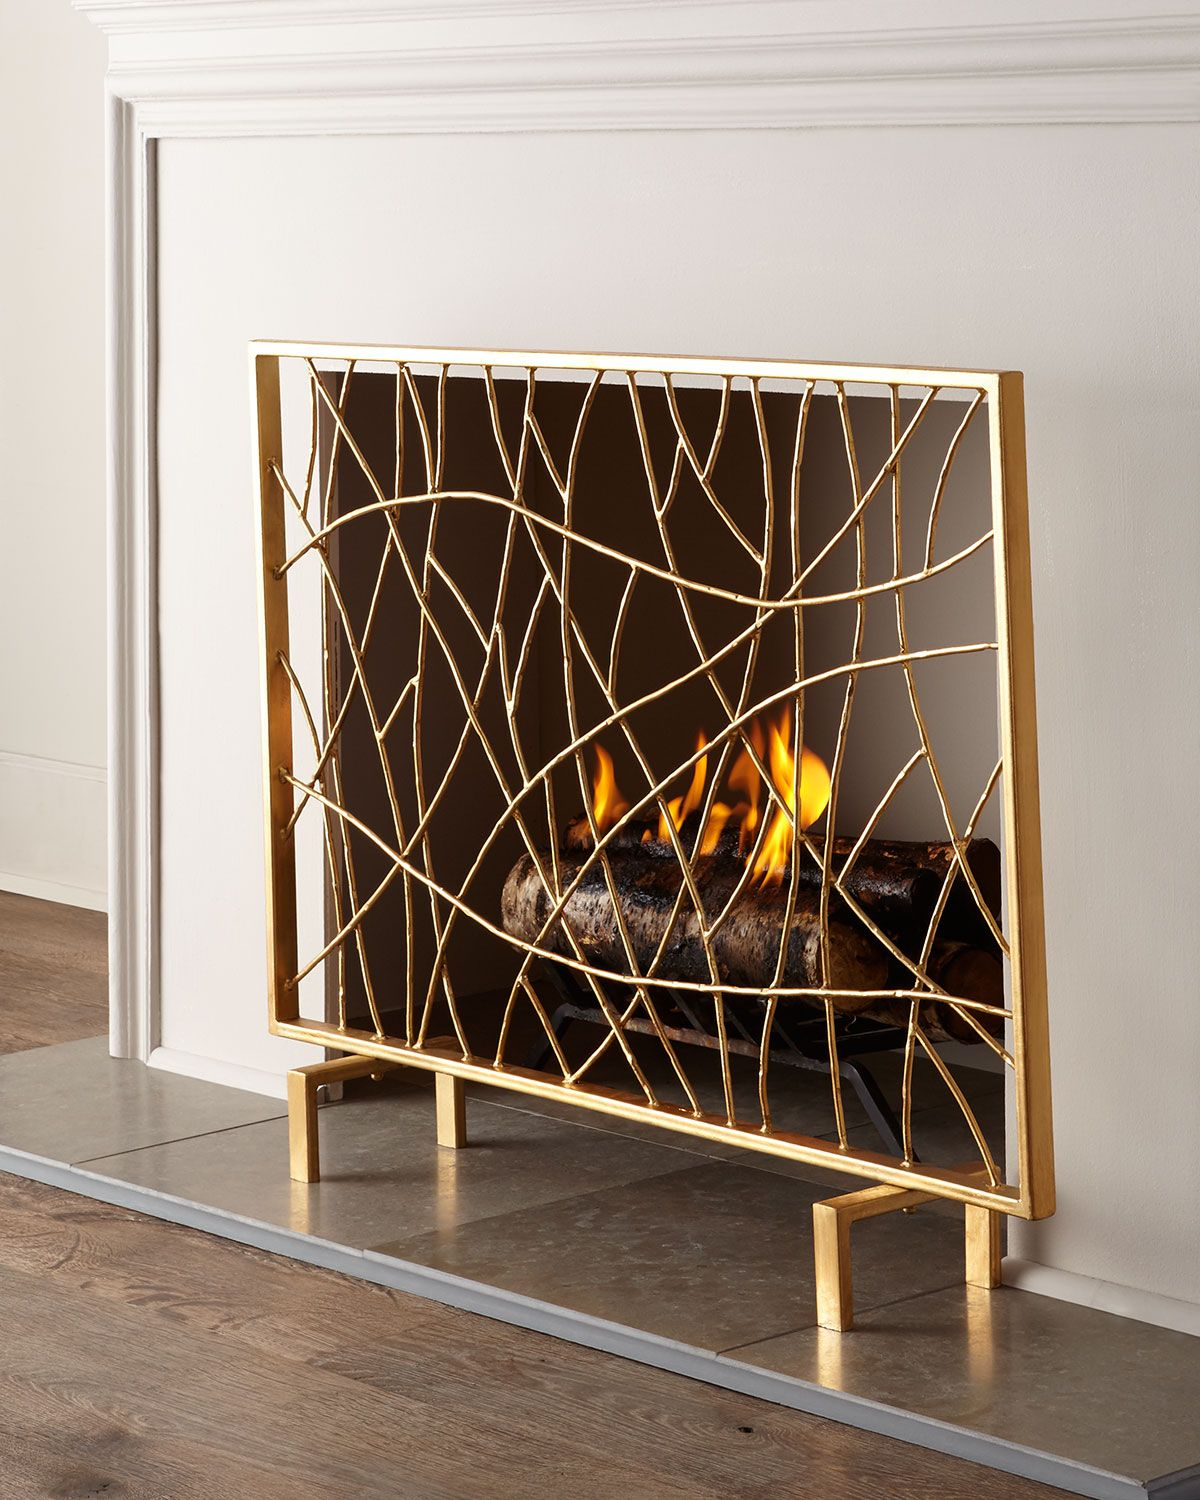 stock photo maxoidos accessories fireplace depositphotos